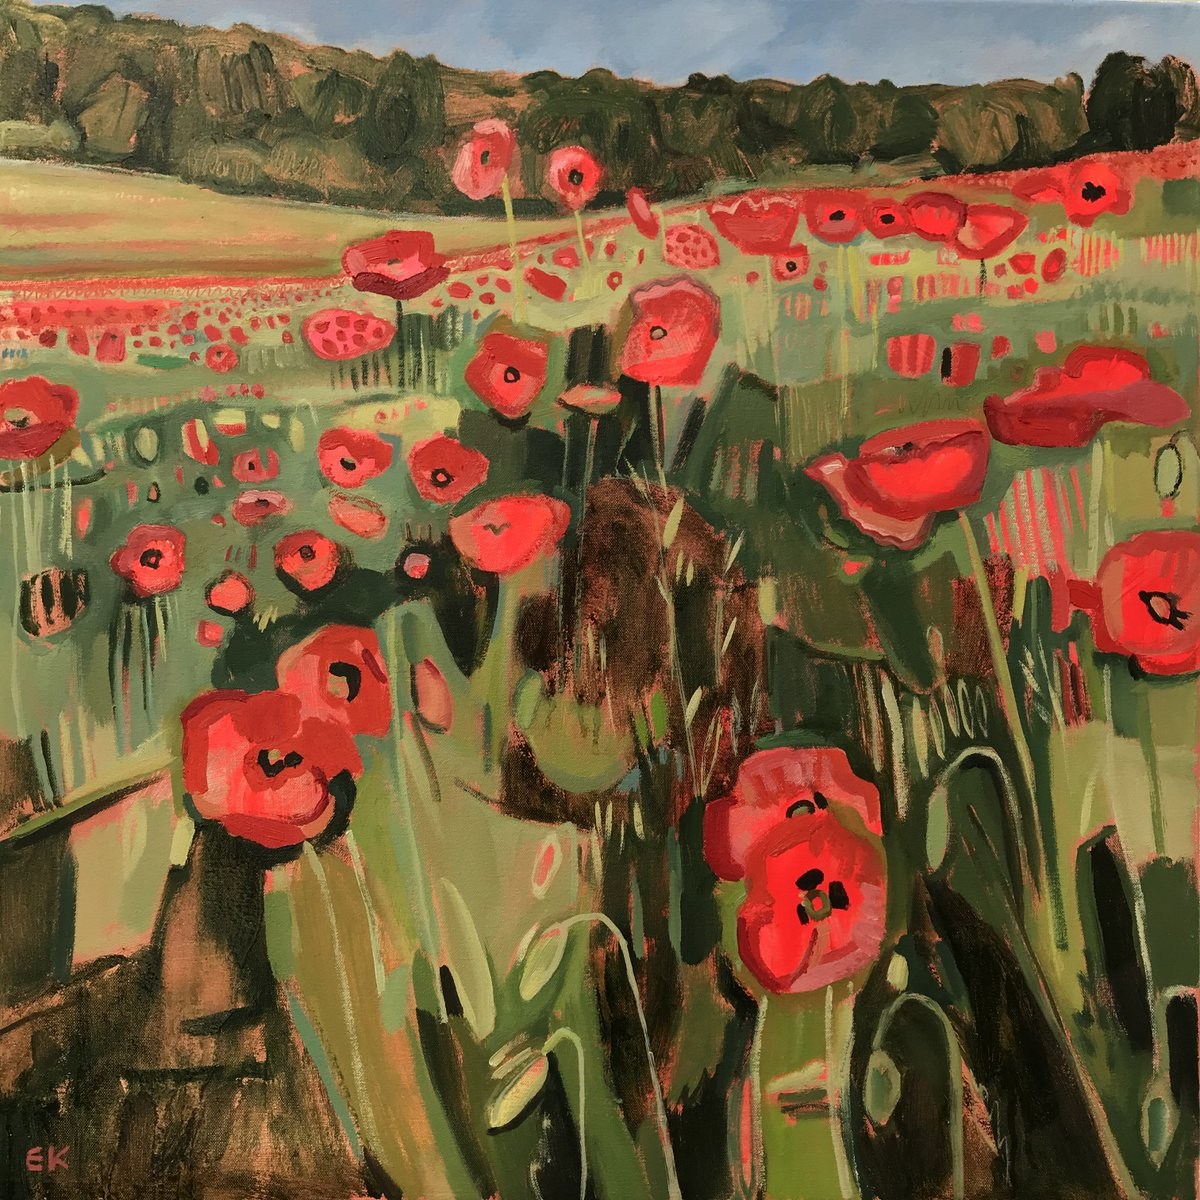 @plantlife's  #GreenRecovery grant will mean more wildflower meadows, road verges and other habitats - good news for bees, butterflies birds and landscape painters like me!